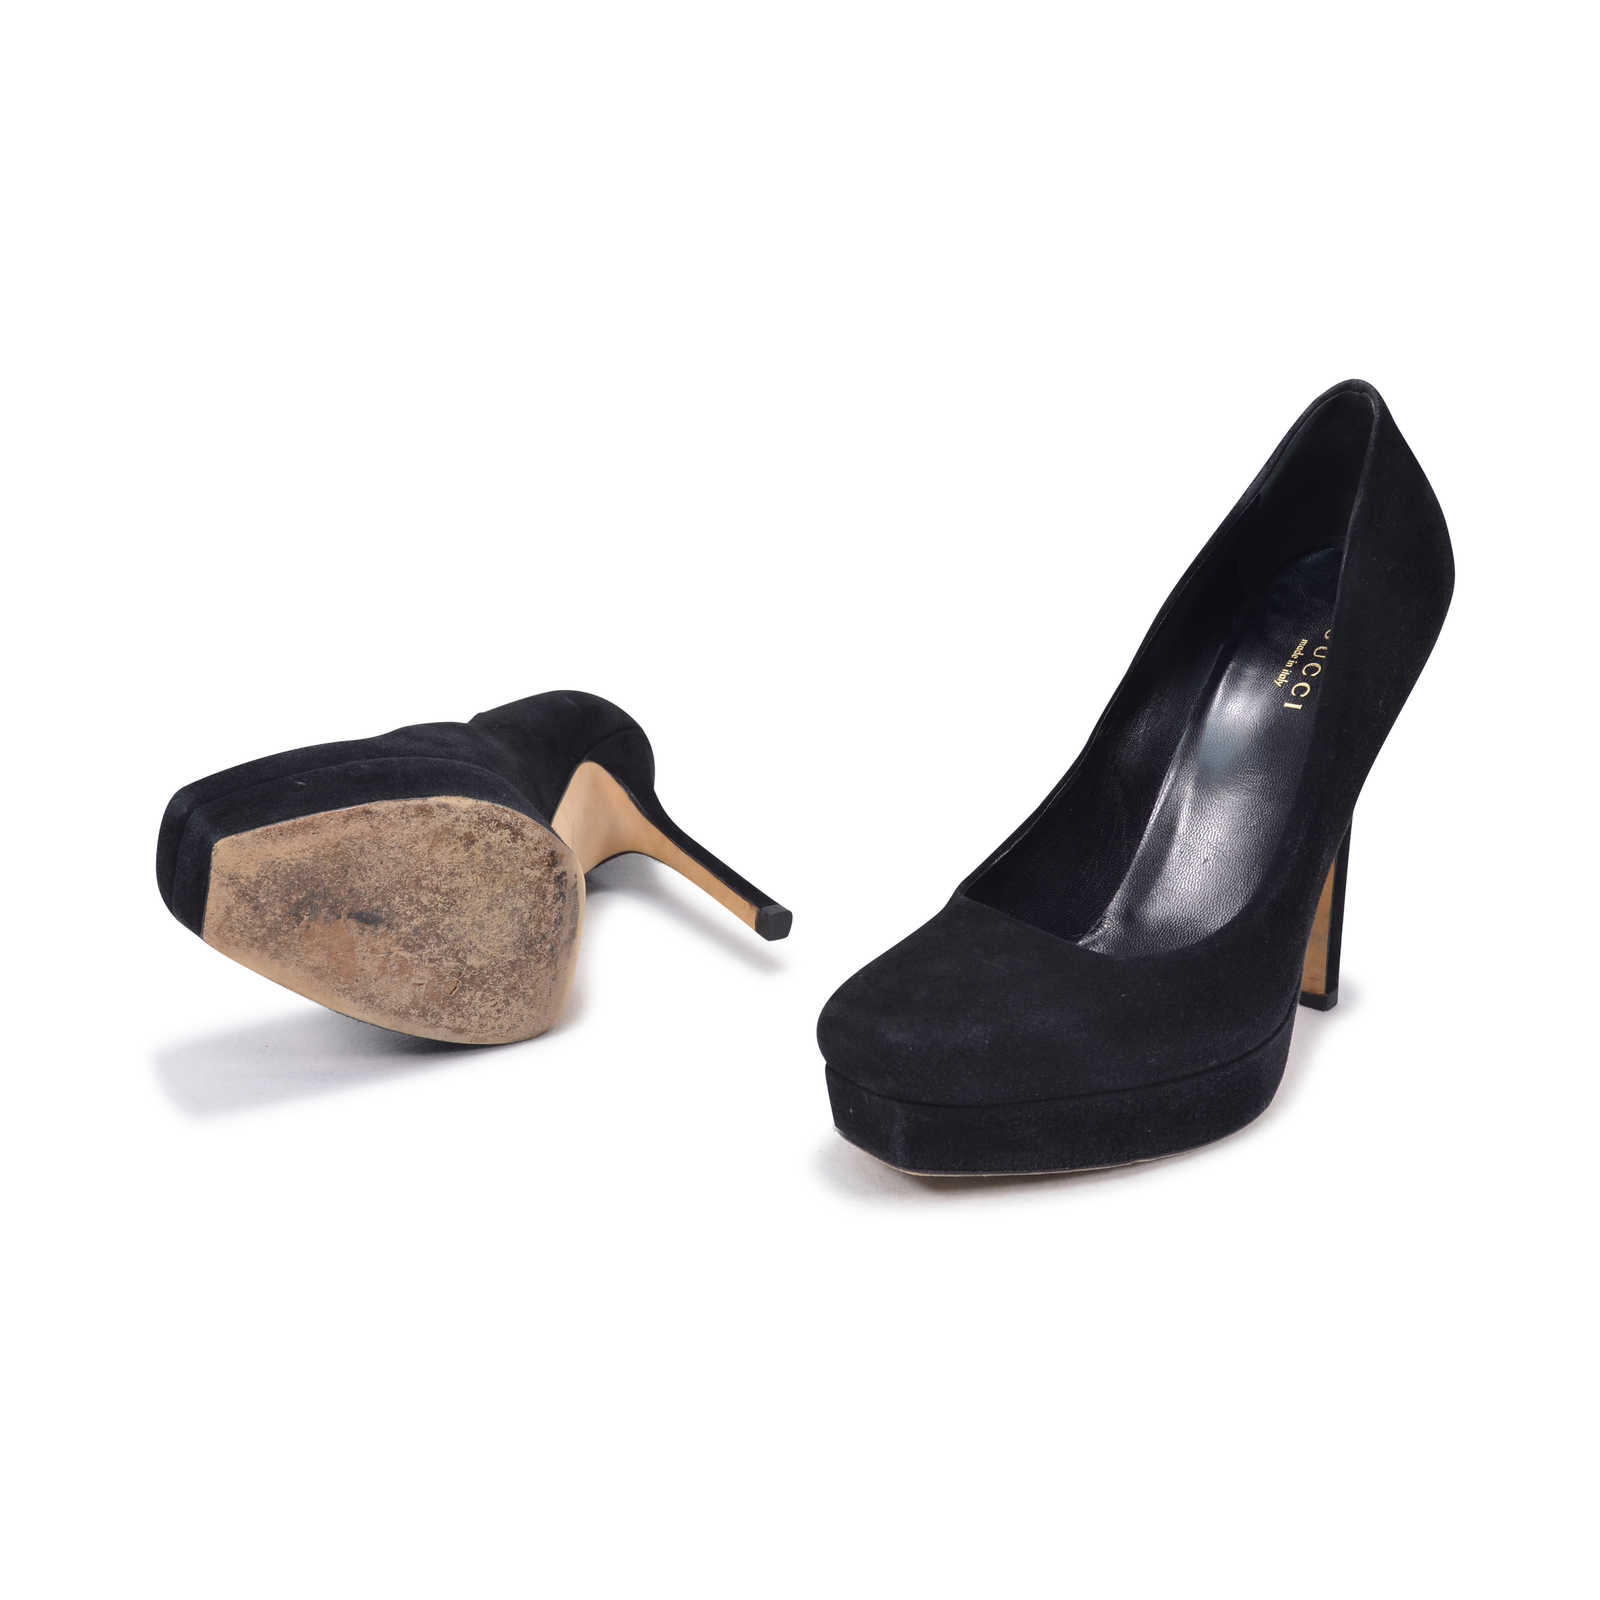 9bd6b5551 ... Authentic Second Hand Gucci Kid Scamosciato Pumps (PSS-342-00005) -  Thumbnail ...